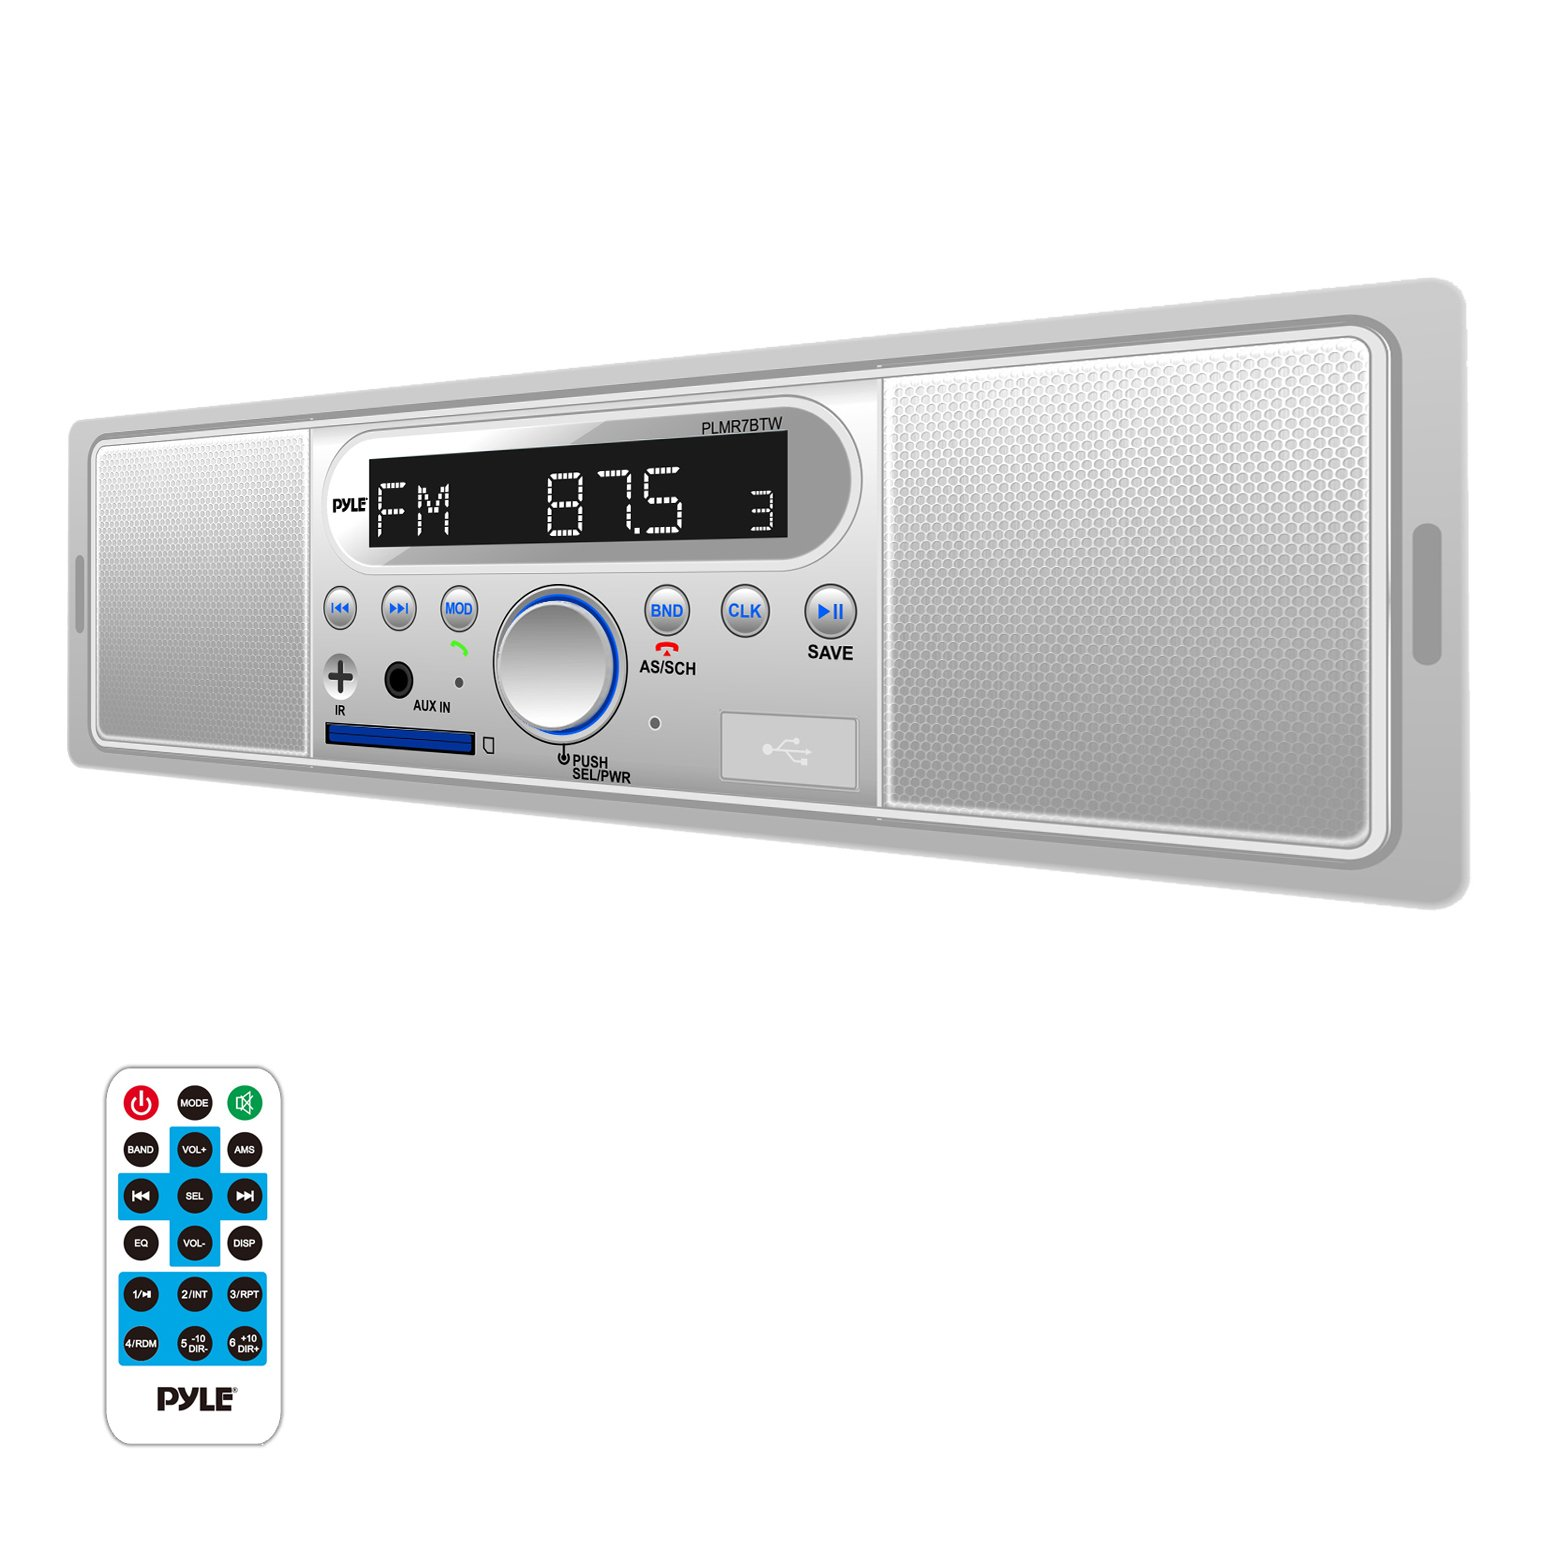 Pyle Marine Bluetooth Stereo Radio - 12v Single DIN Style Digital Boat in Dash Radio Receiver System with Built-in Mic and Speakers, RCA, MP3, USB, SD, AM FM Radio - Remote Control - PLMR7BTW (White) by Pyle (Image #1)